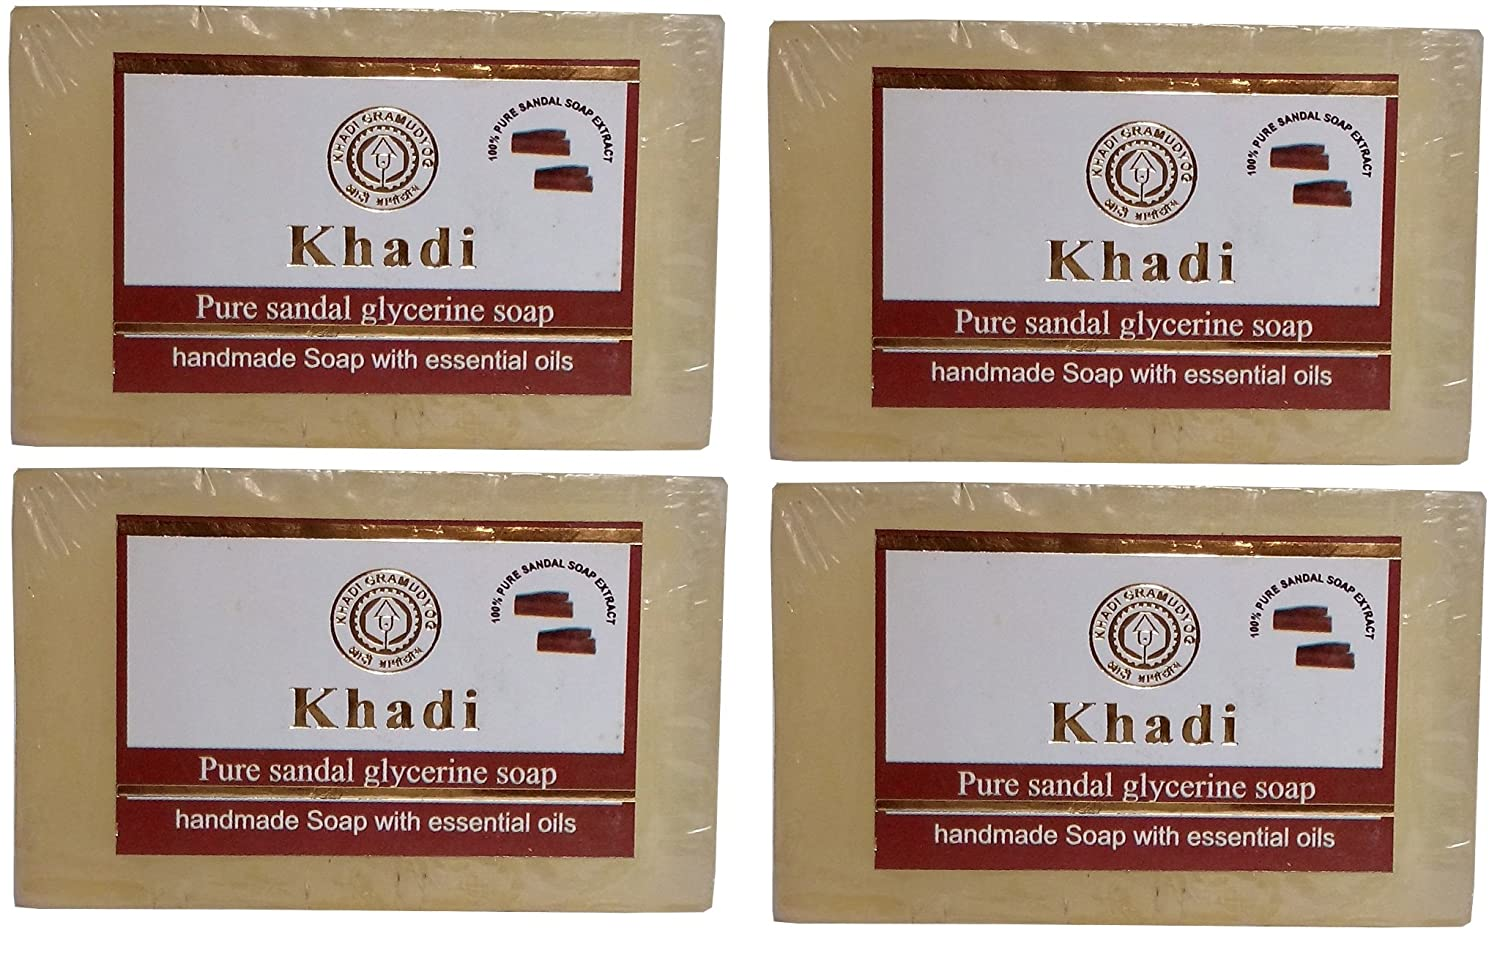 Khadi and Village Industries Commission (KVIC) - Sandlewood